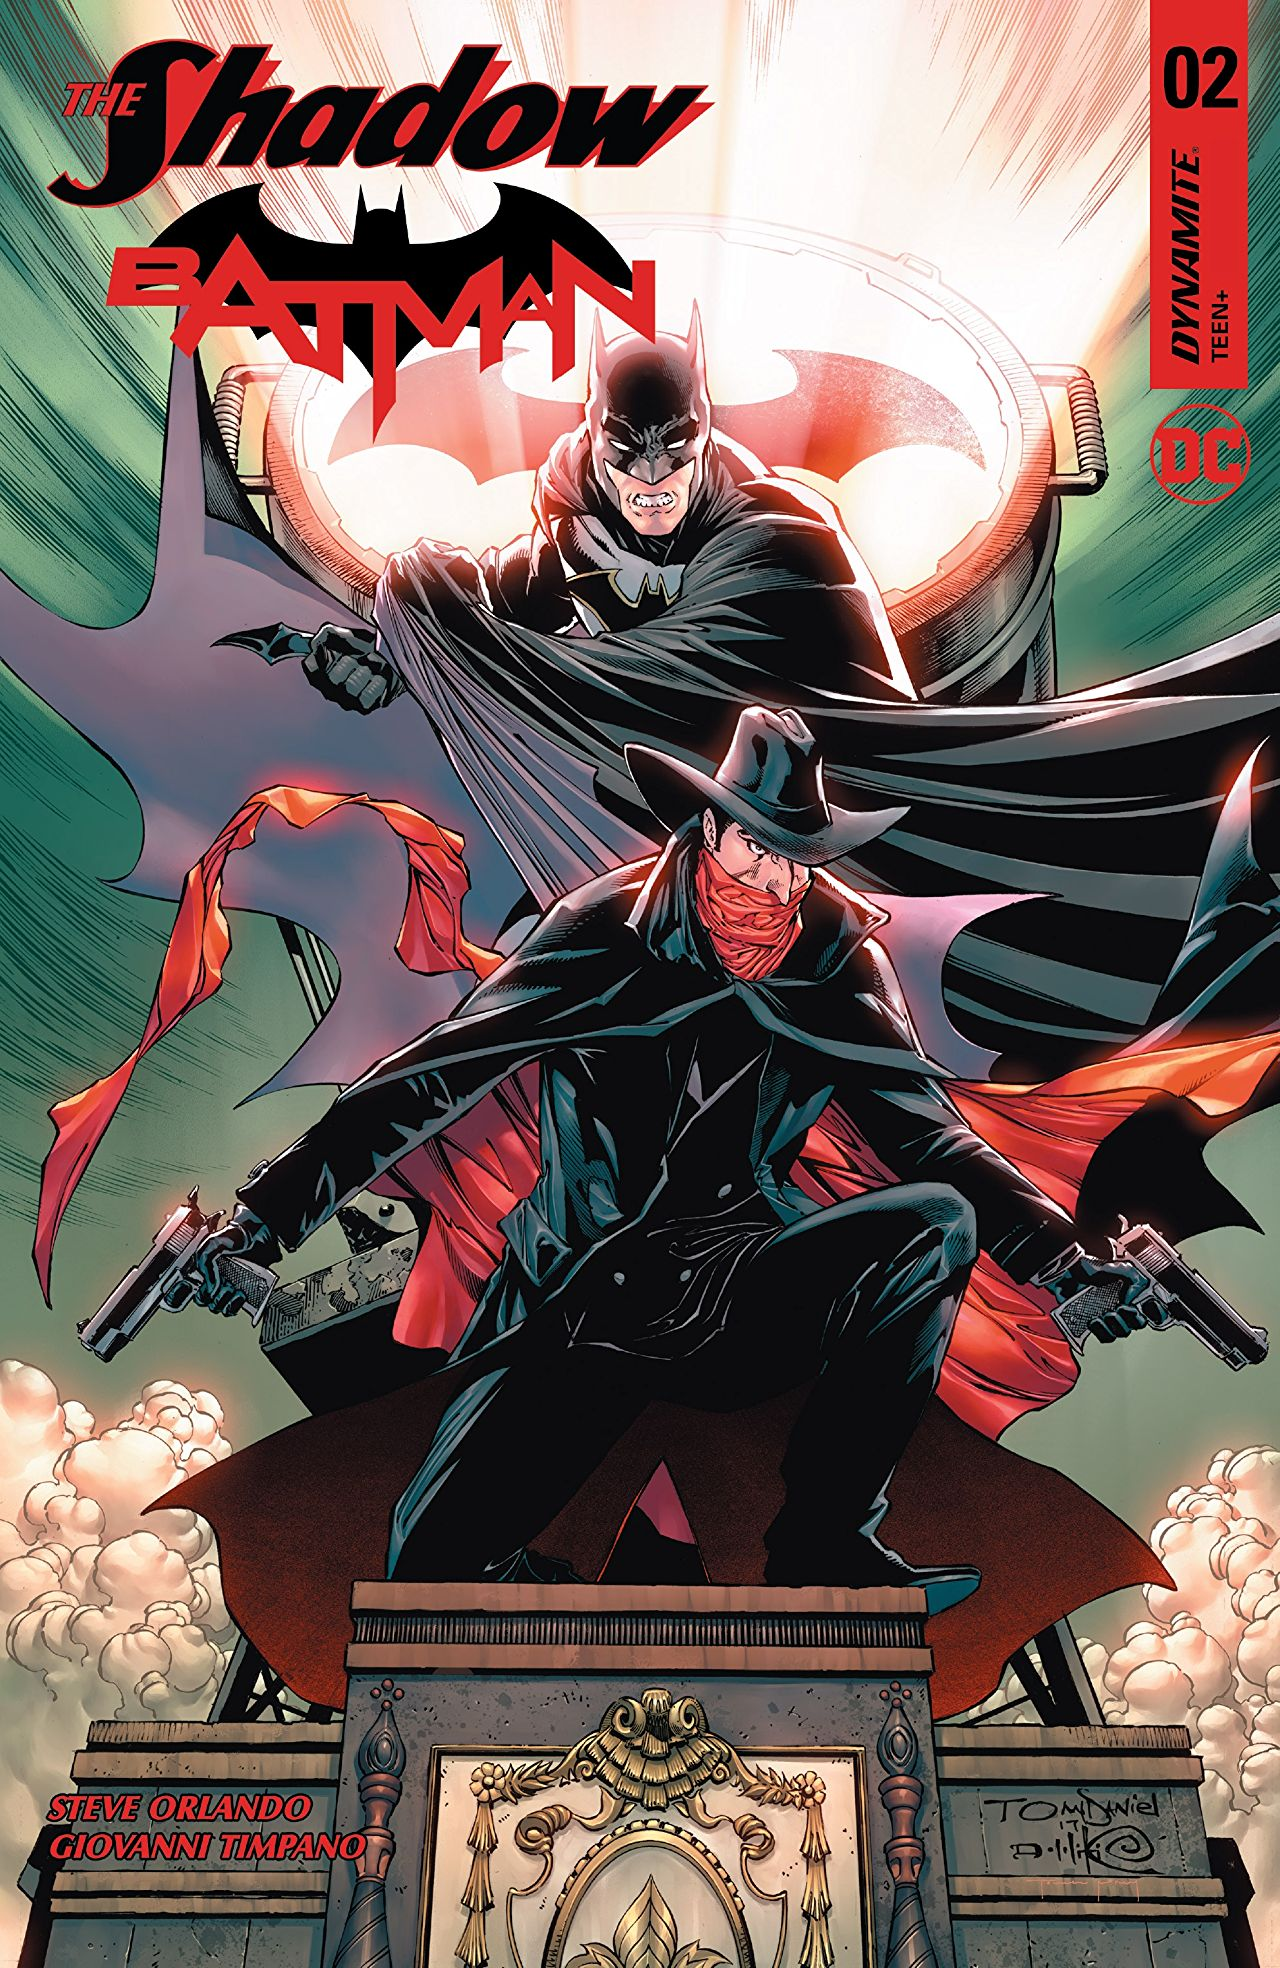 The Shadow/Batman Vol 1 2